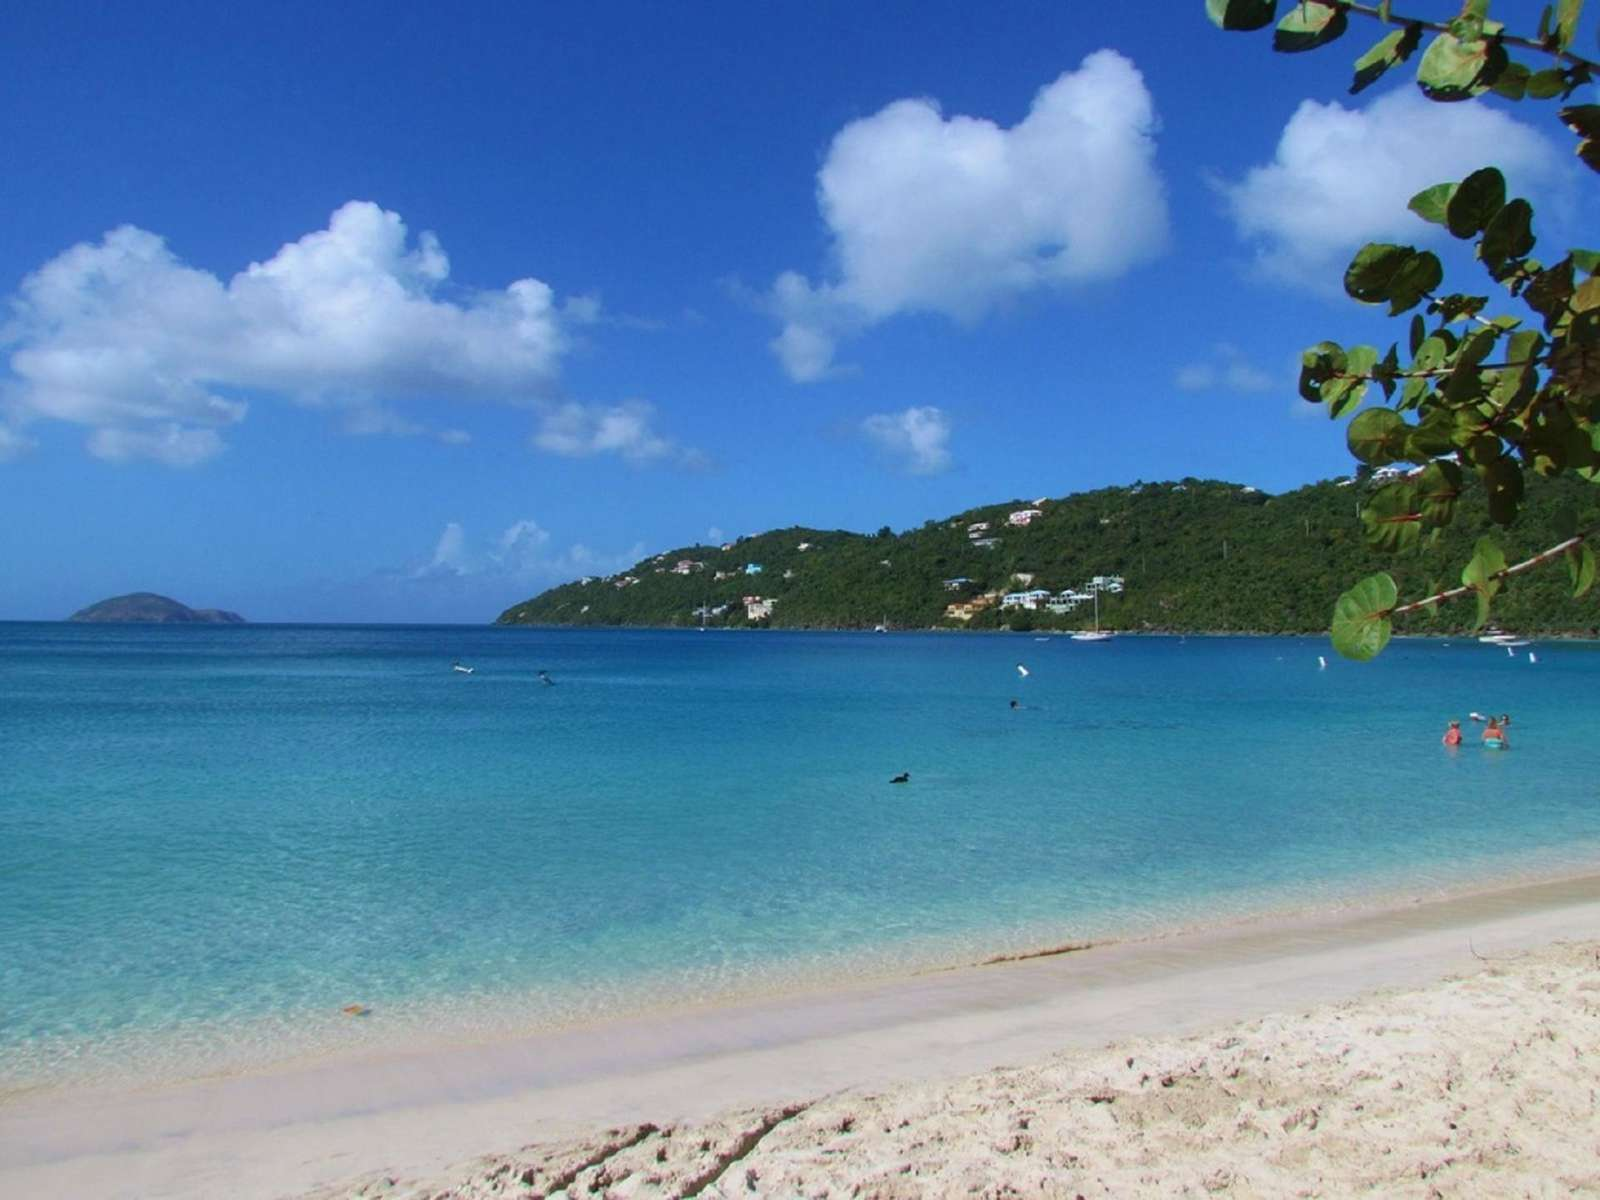 Megans Bay - Always Voted one of the Top 10 Beaches in the World